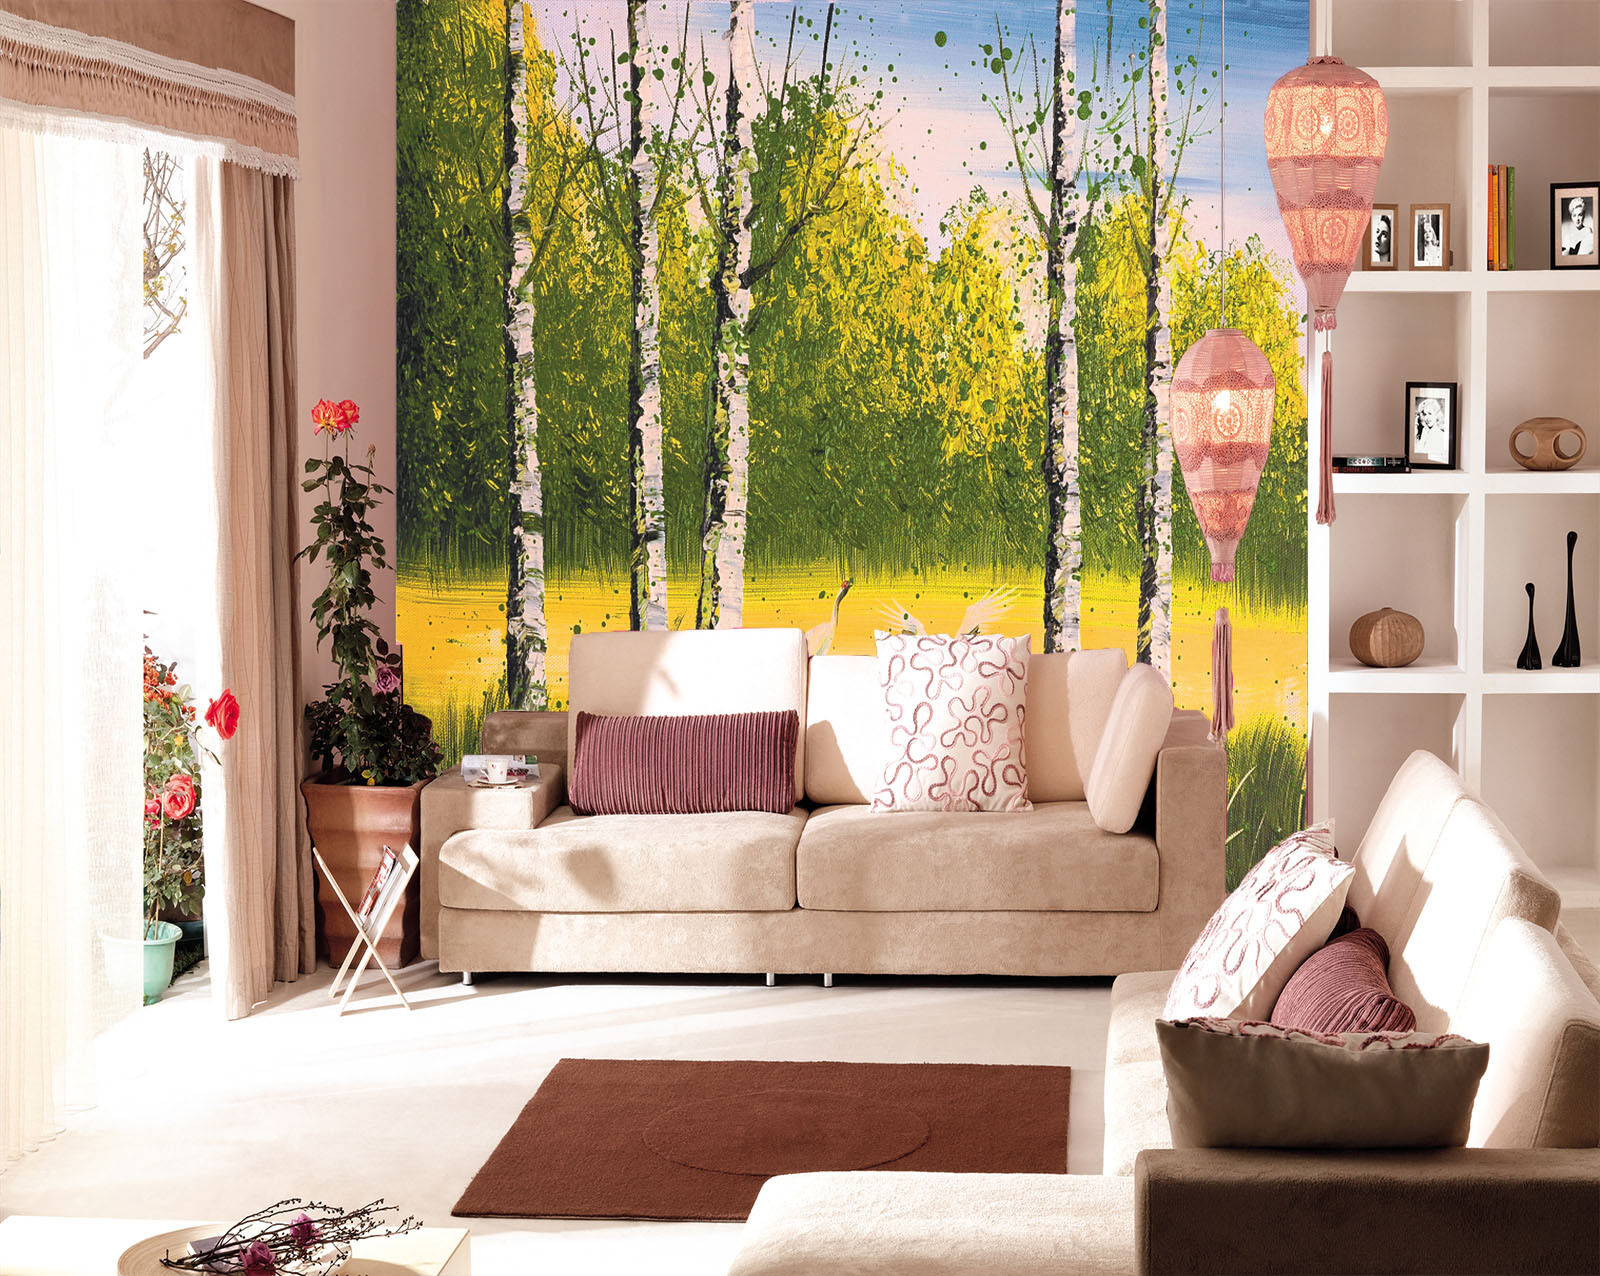 3D Painted Forest Trunk Paper Wall Print Wall Decal Wall Deco Indoor Murals